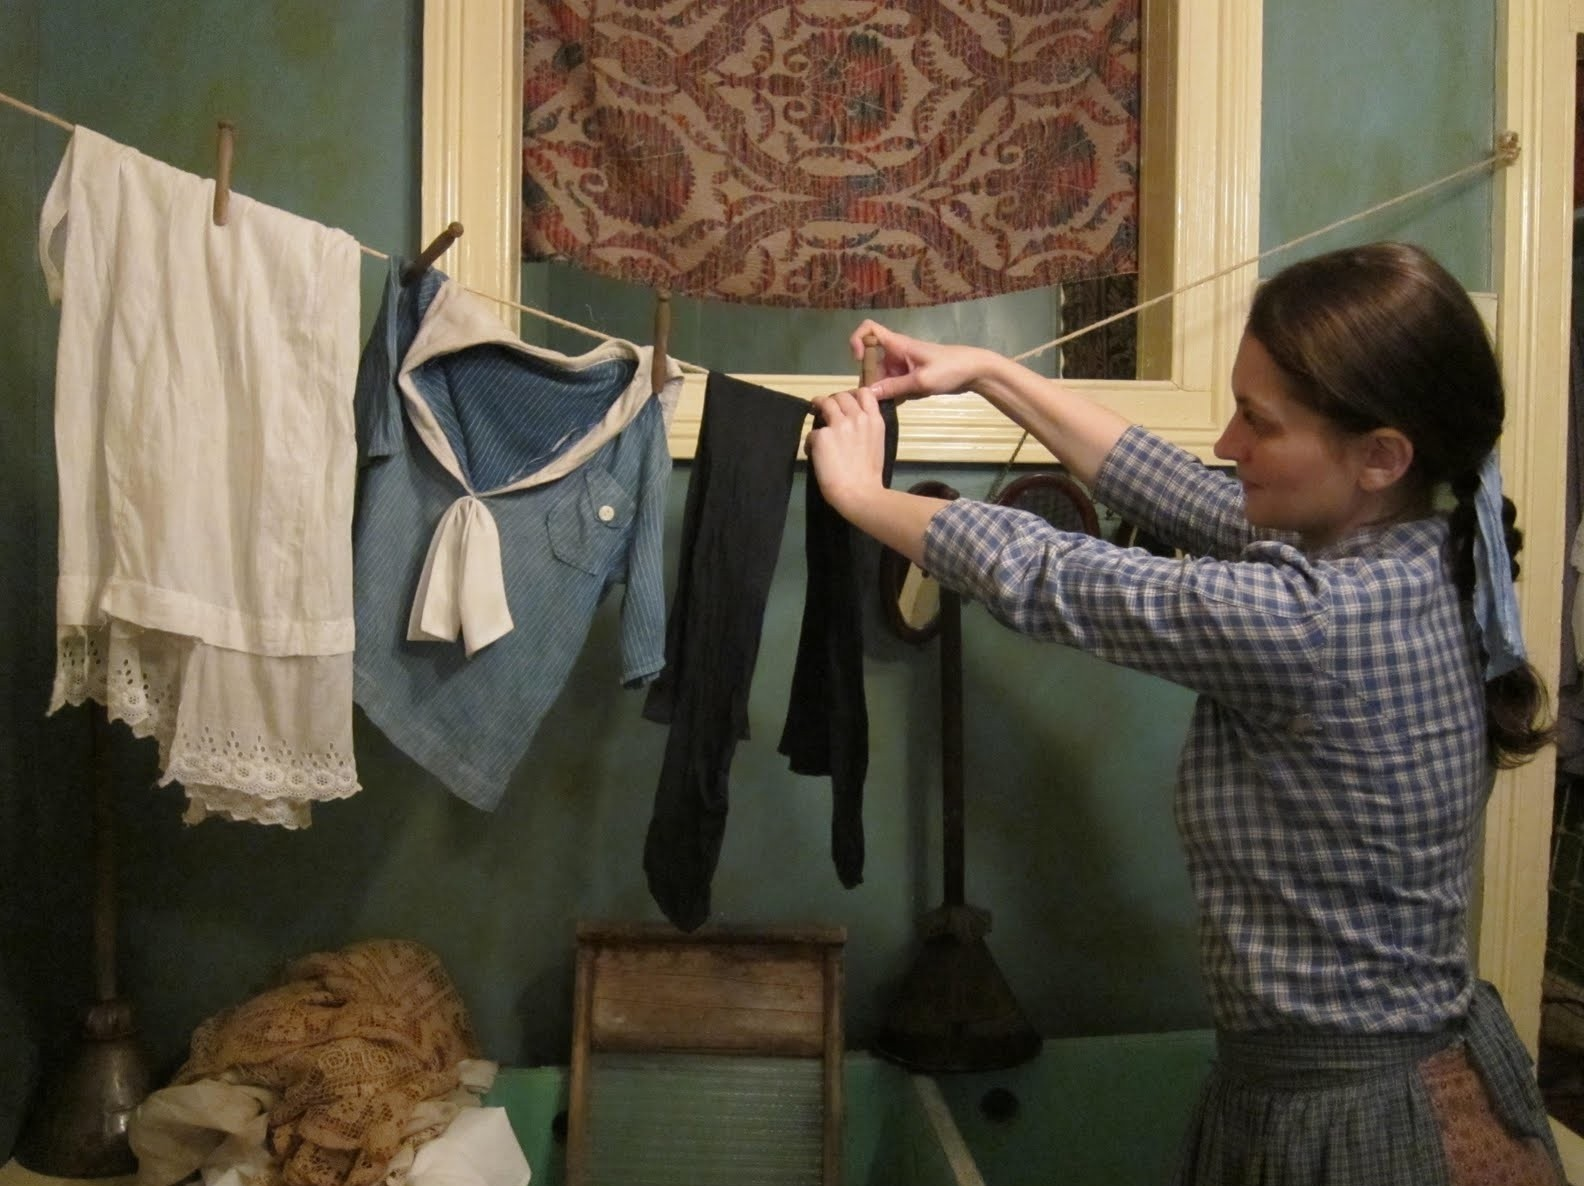 Actor playing the role of Victoria Confino in her family's recreated 97 Orchard Street Tenement Apartment